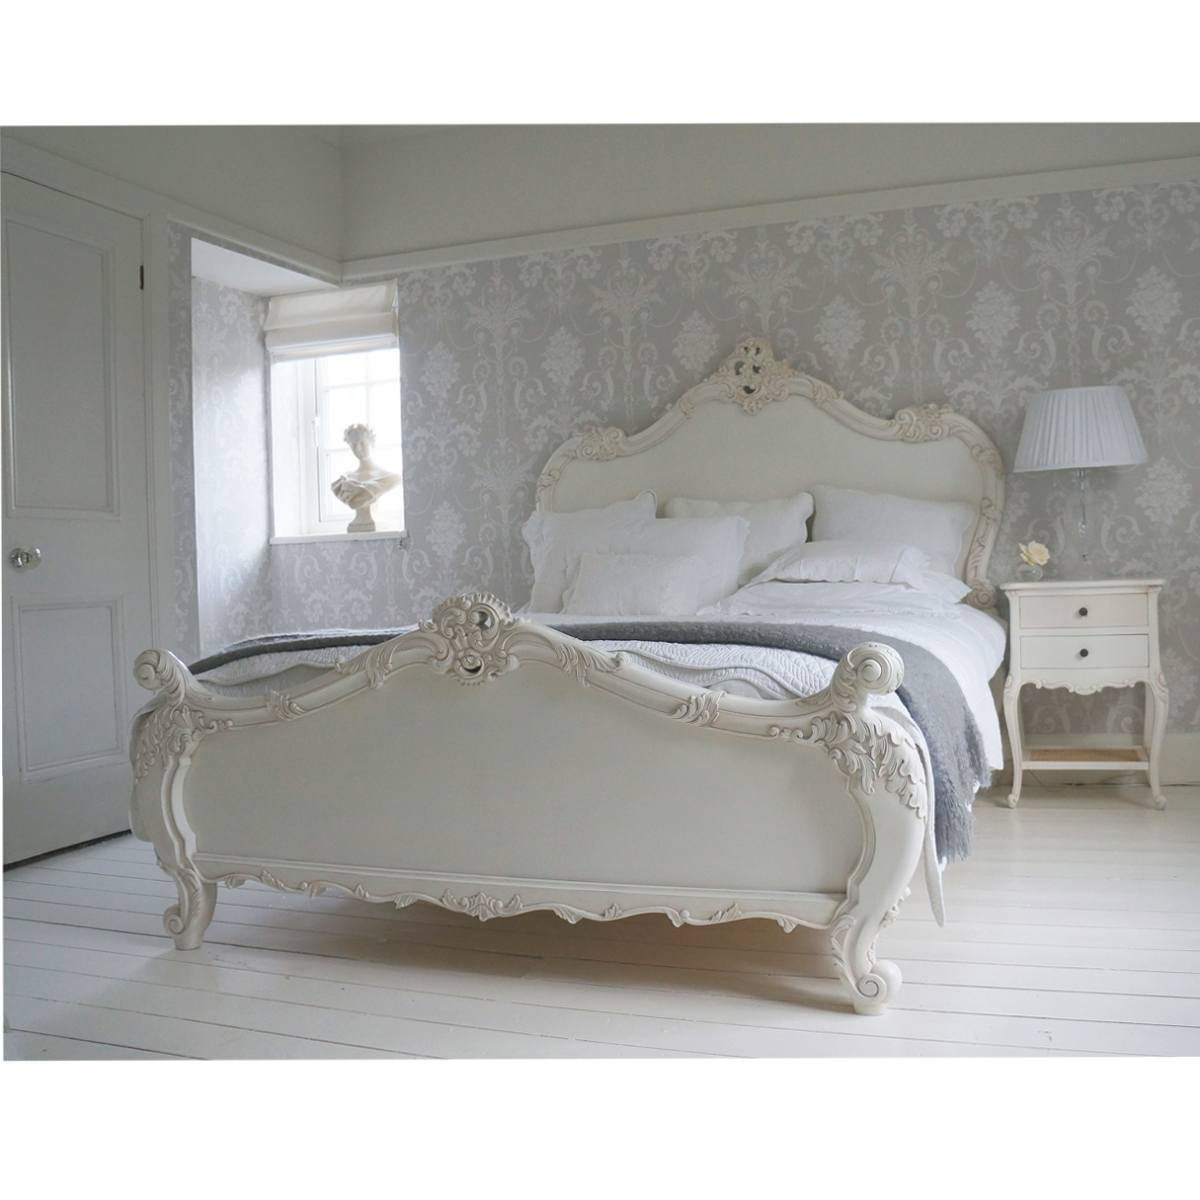 Provencal sassy white french bed french bedroom company for Furniture in french